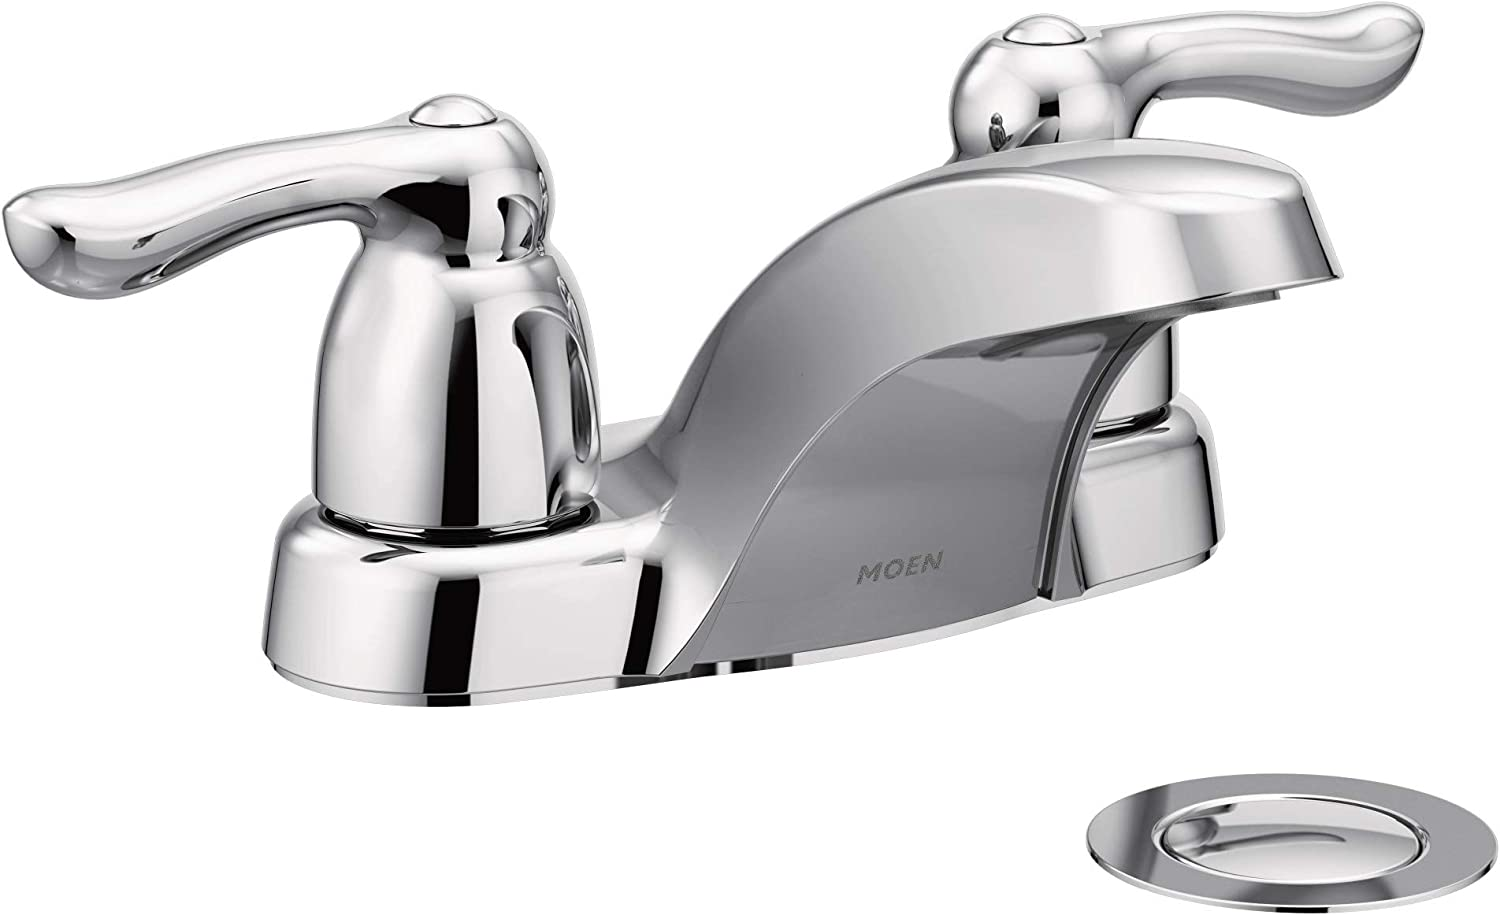 Brushed Chrome Moen 4925BC Chateau Two-Handle Low Arc Bathroom Faucet